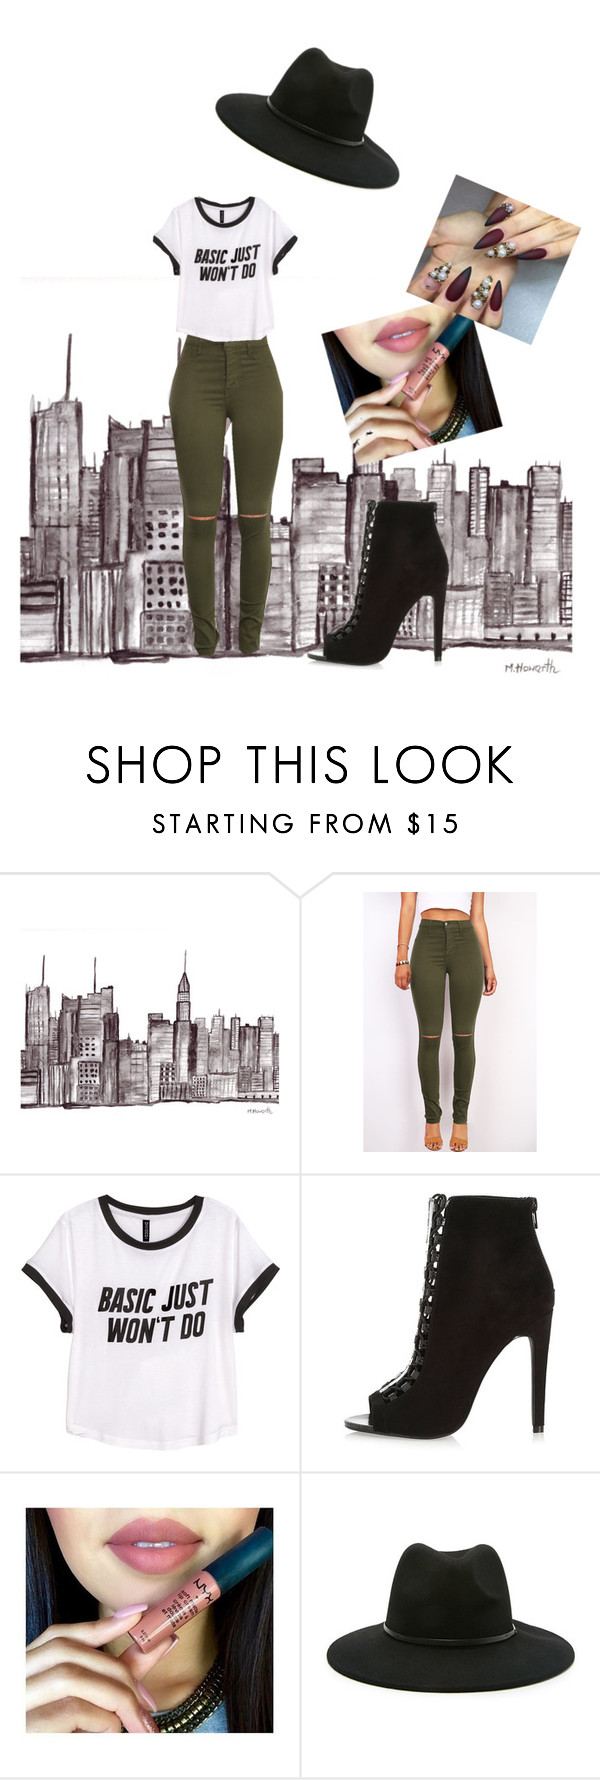 """""""by Kayla"""" by c-farwell ❤ liked on Polyvore featuring H&M, Forever 21, women's clothing, women, female, woman, misses and juniors"""